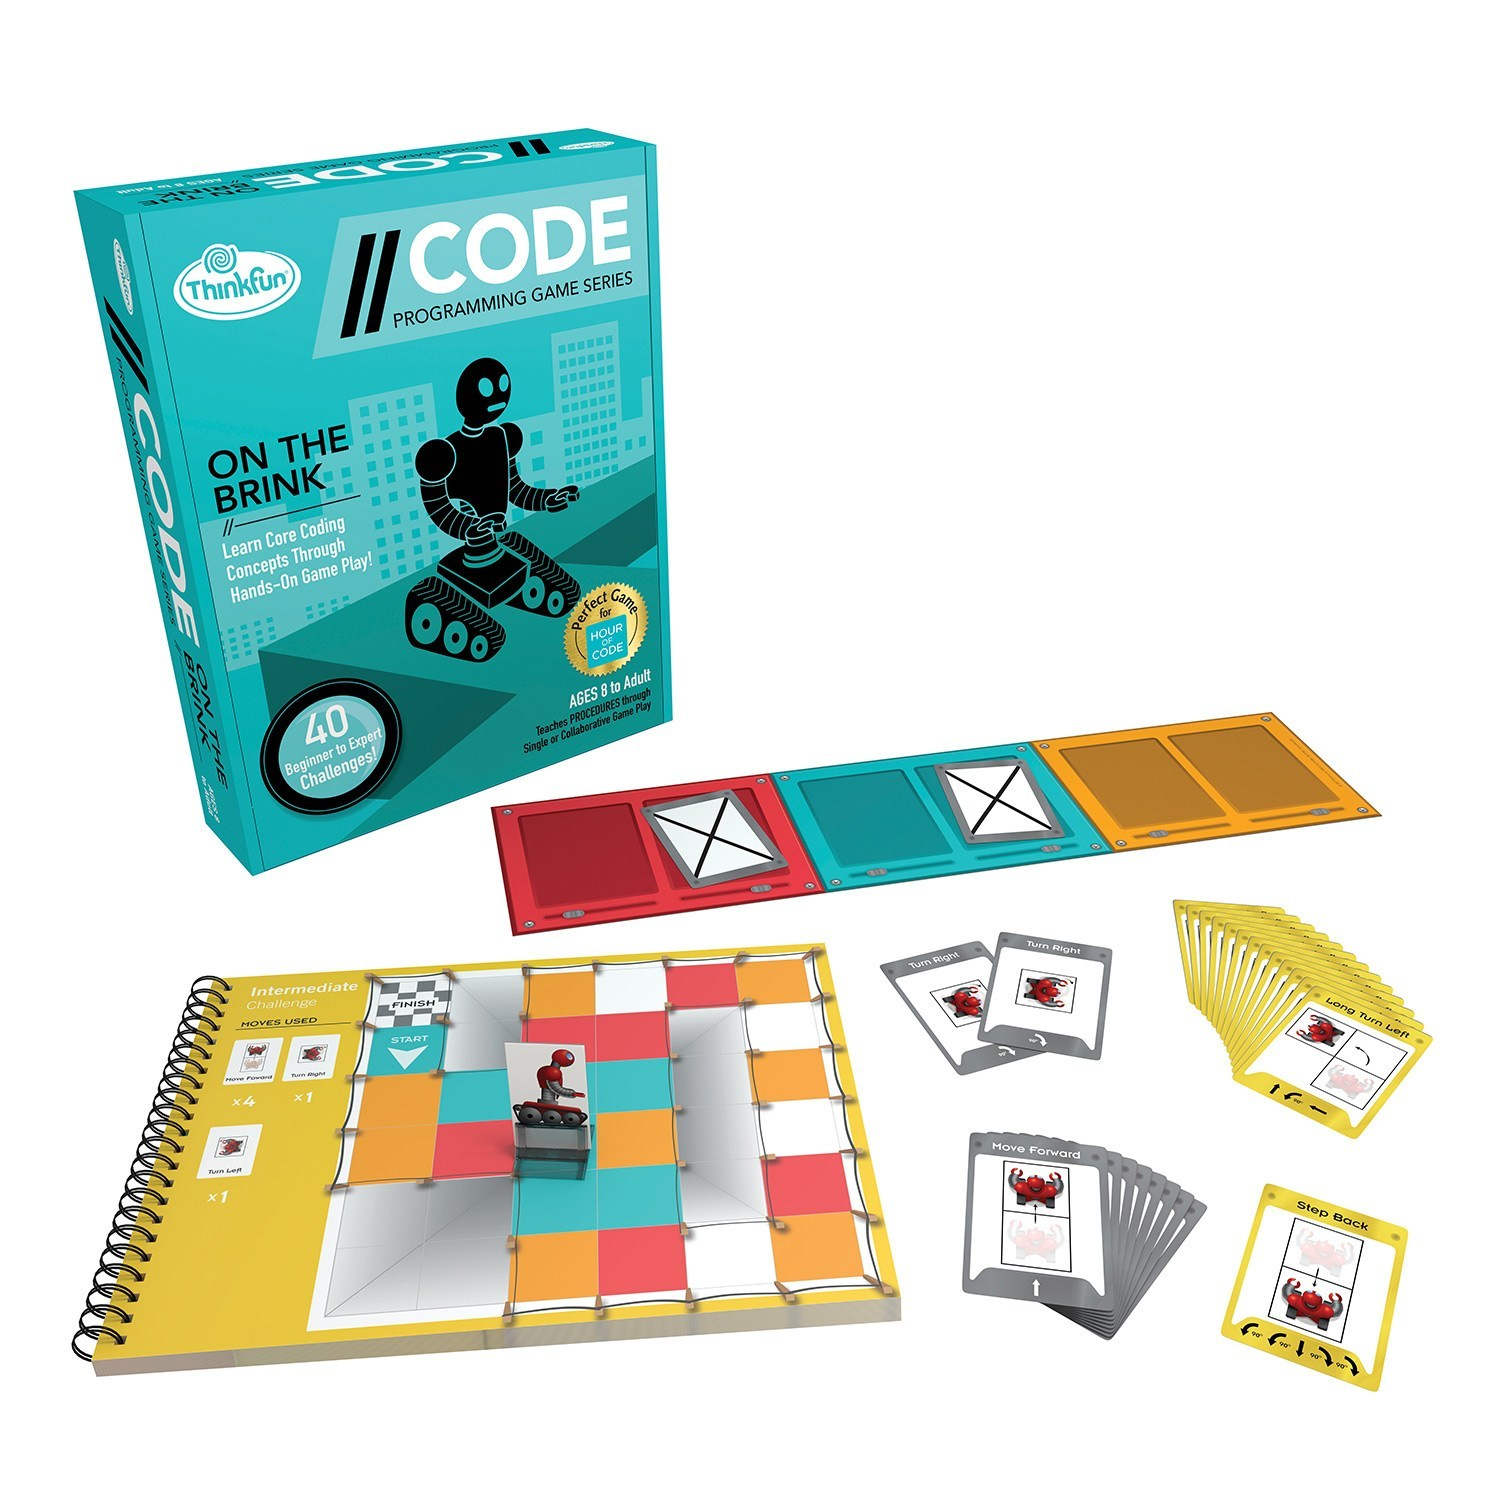 Code On The Brink Game Toy At Mighty Ape Nz Circuit Maze Thinkfun Image